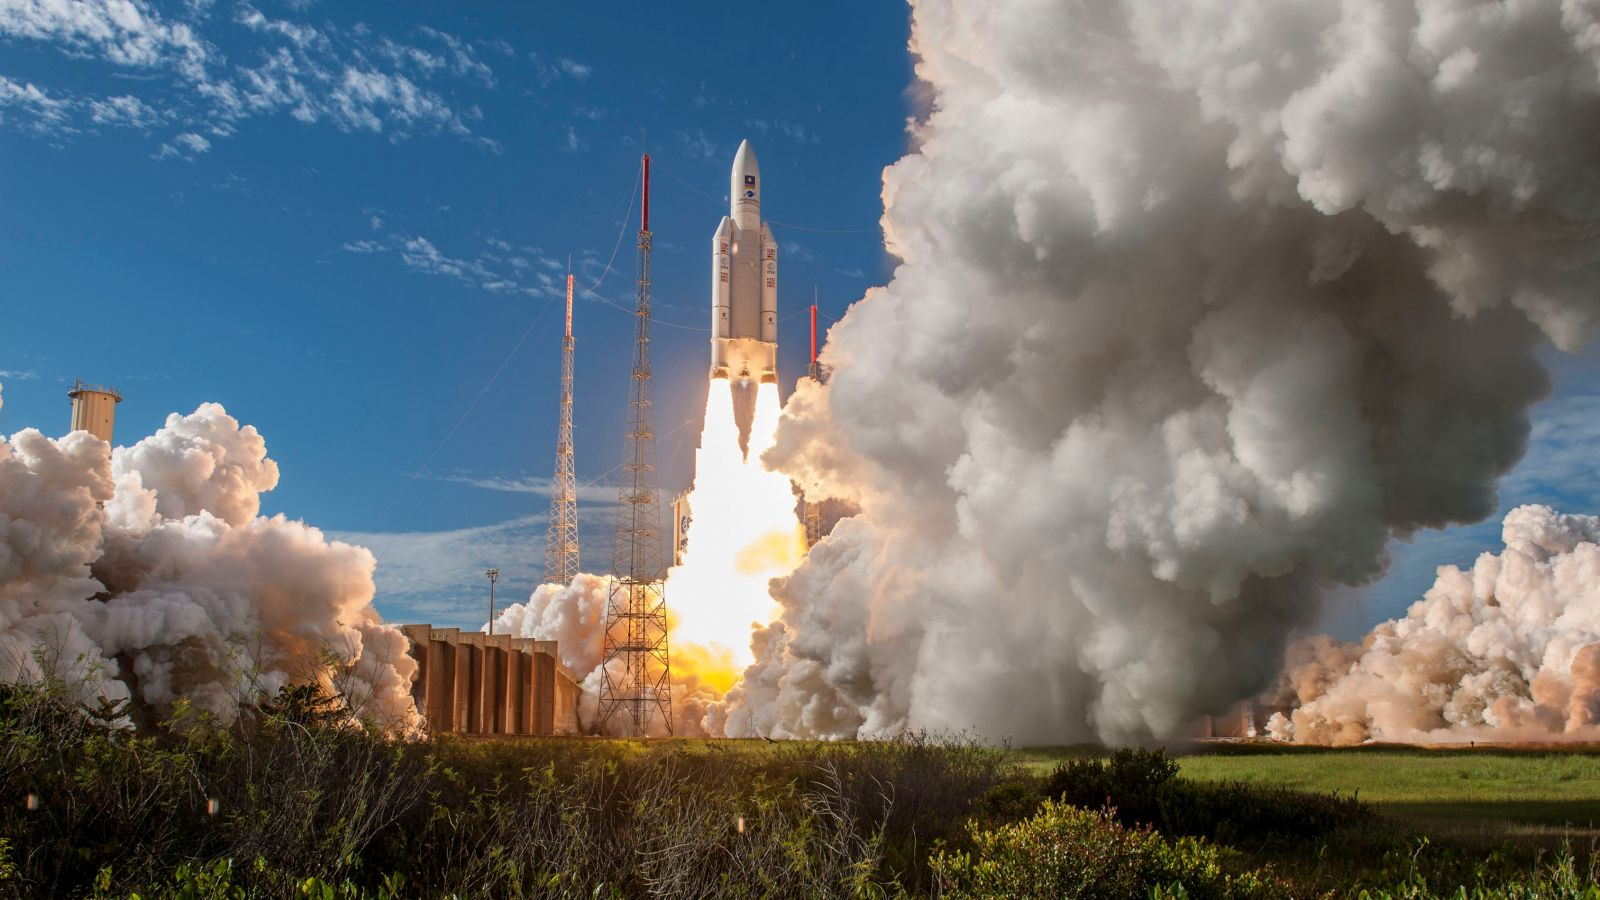 An Ariane 5 ES rocket launches to send four Galileo navigation satellites into space. Photo Credit: Arianespace